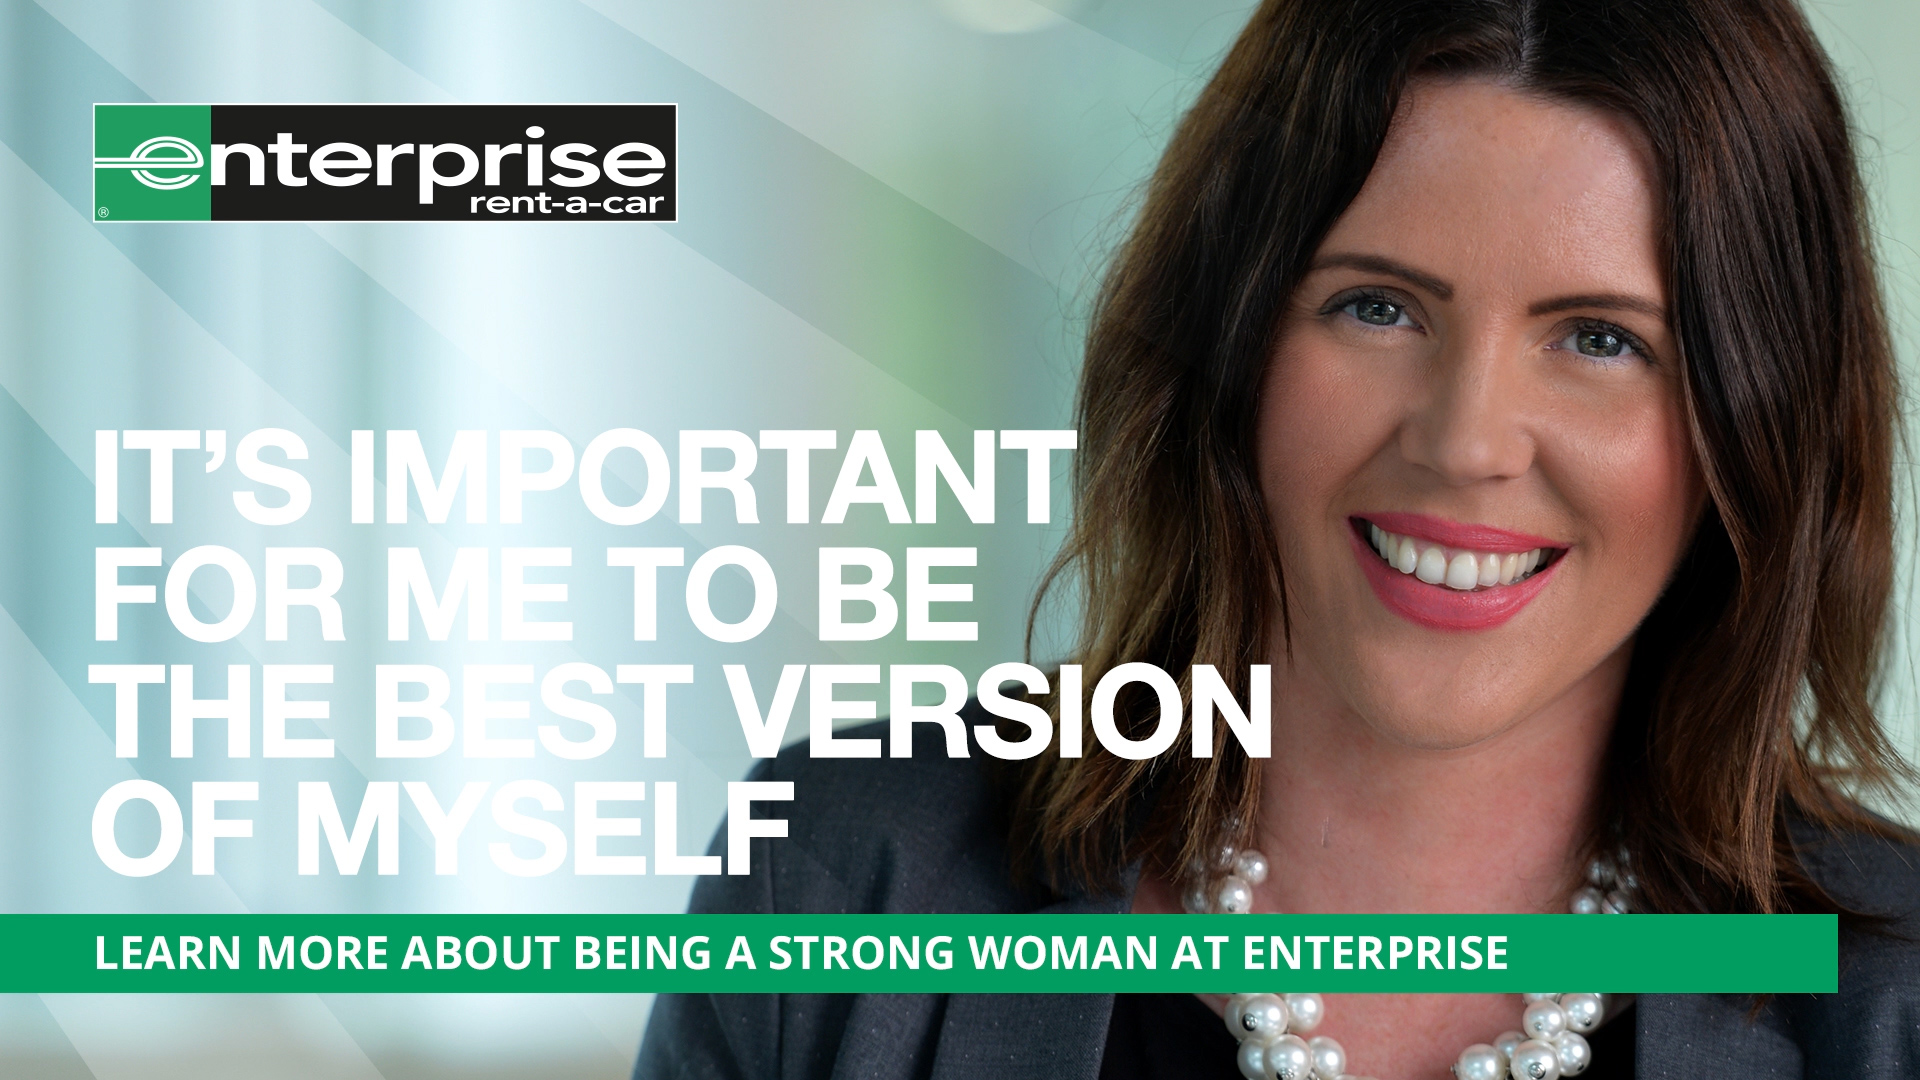 Enterprise's support for women creates career legacy